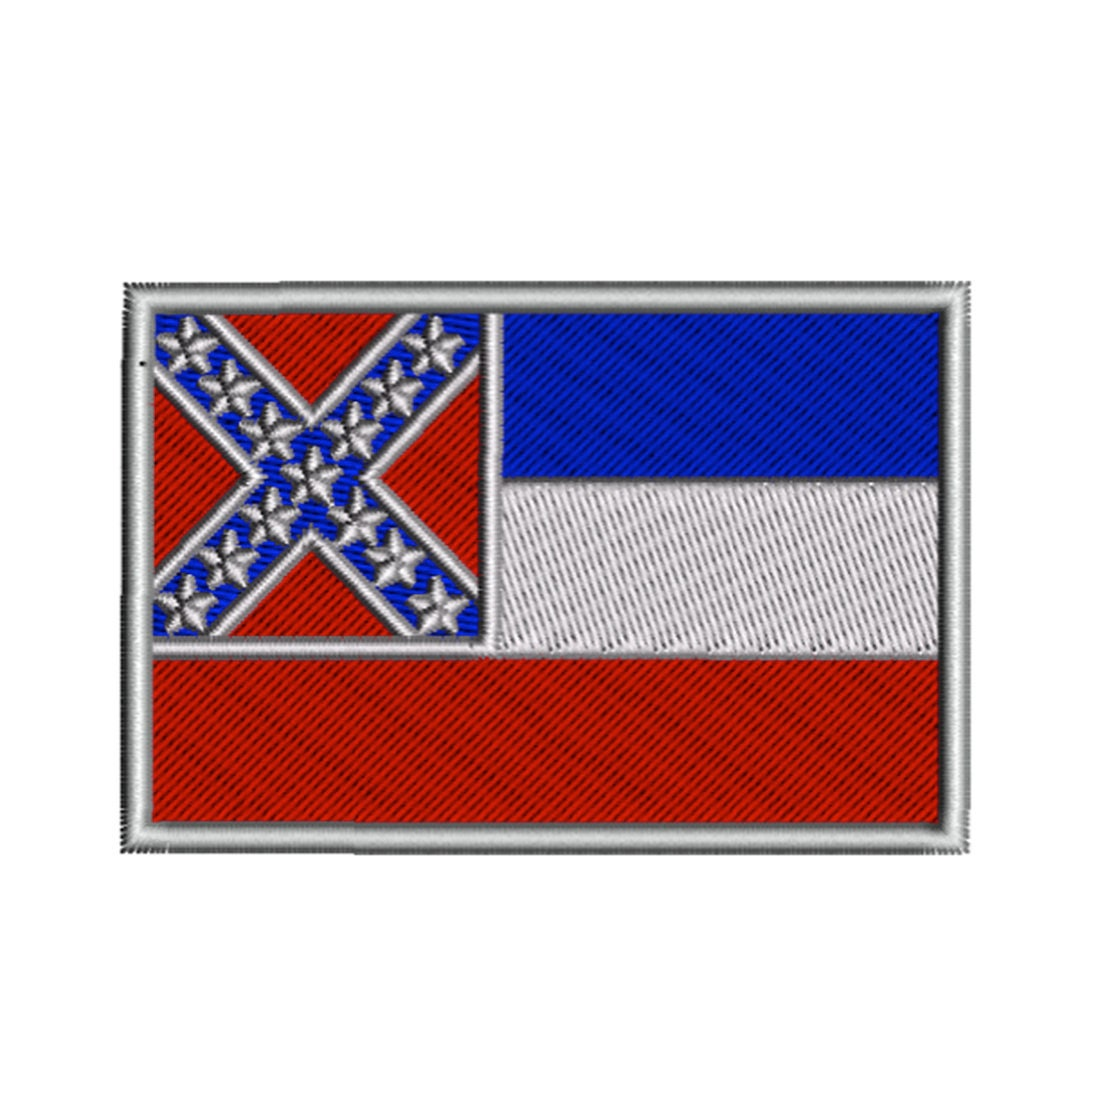 New Jersey State Flag Machine Embroidery Design Digital Instant Download US State Flags United States of America USA Hoop Size 4x4 in